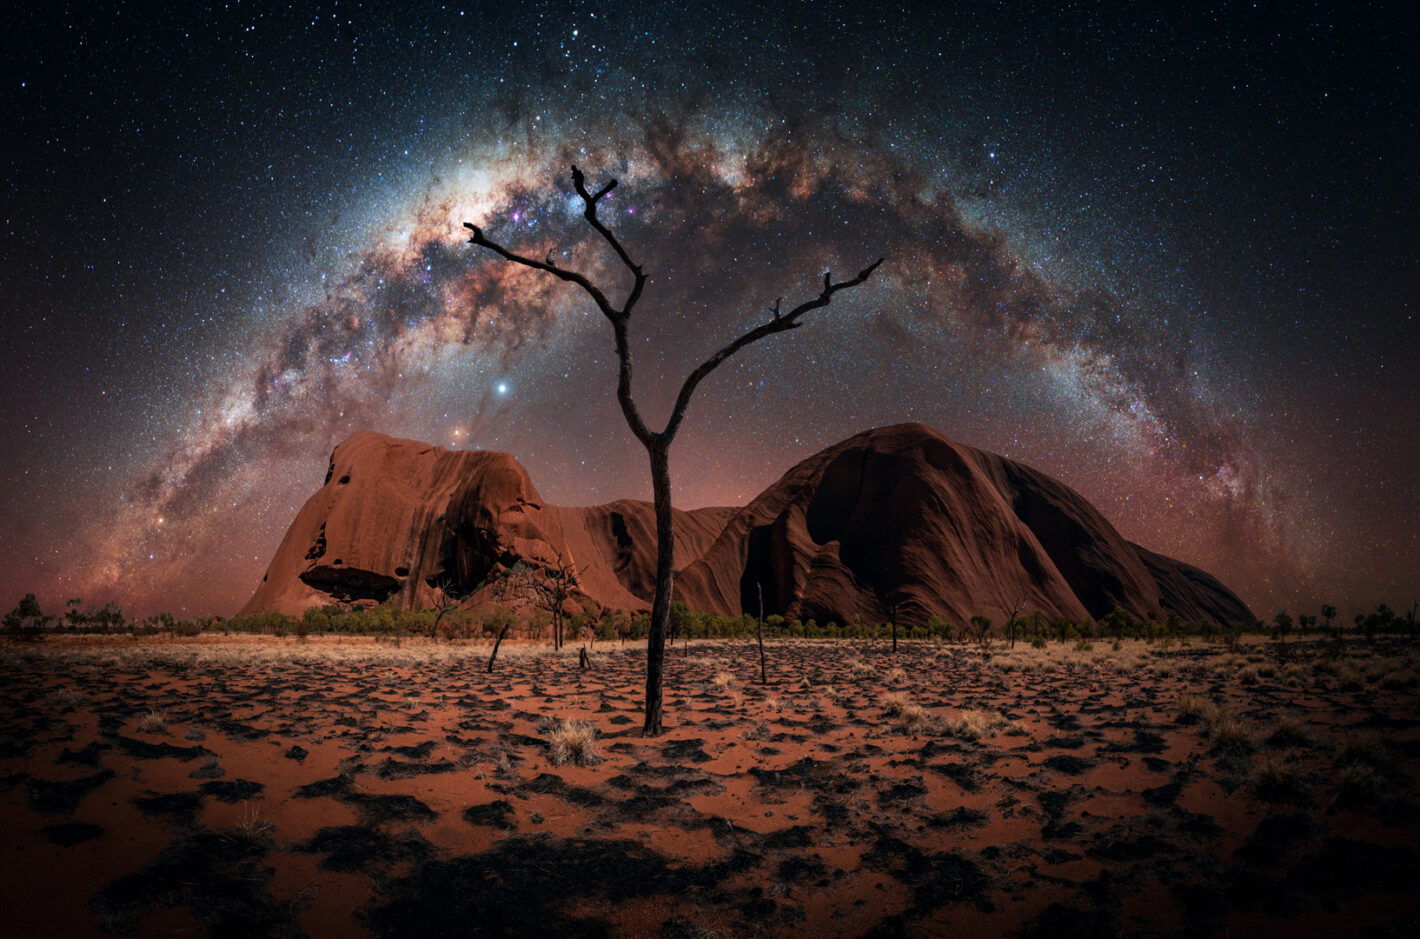 Ayers Rock, Australia Sony A7III, 14 mm, 15 et 149 sec, 6 photos, 1600 et 1250 iso, f4.5 et 1.8